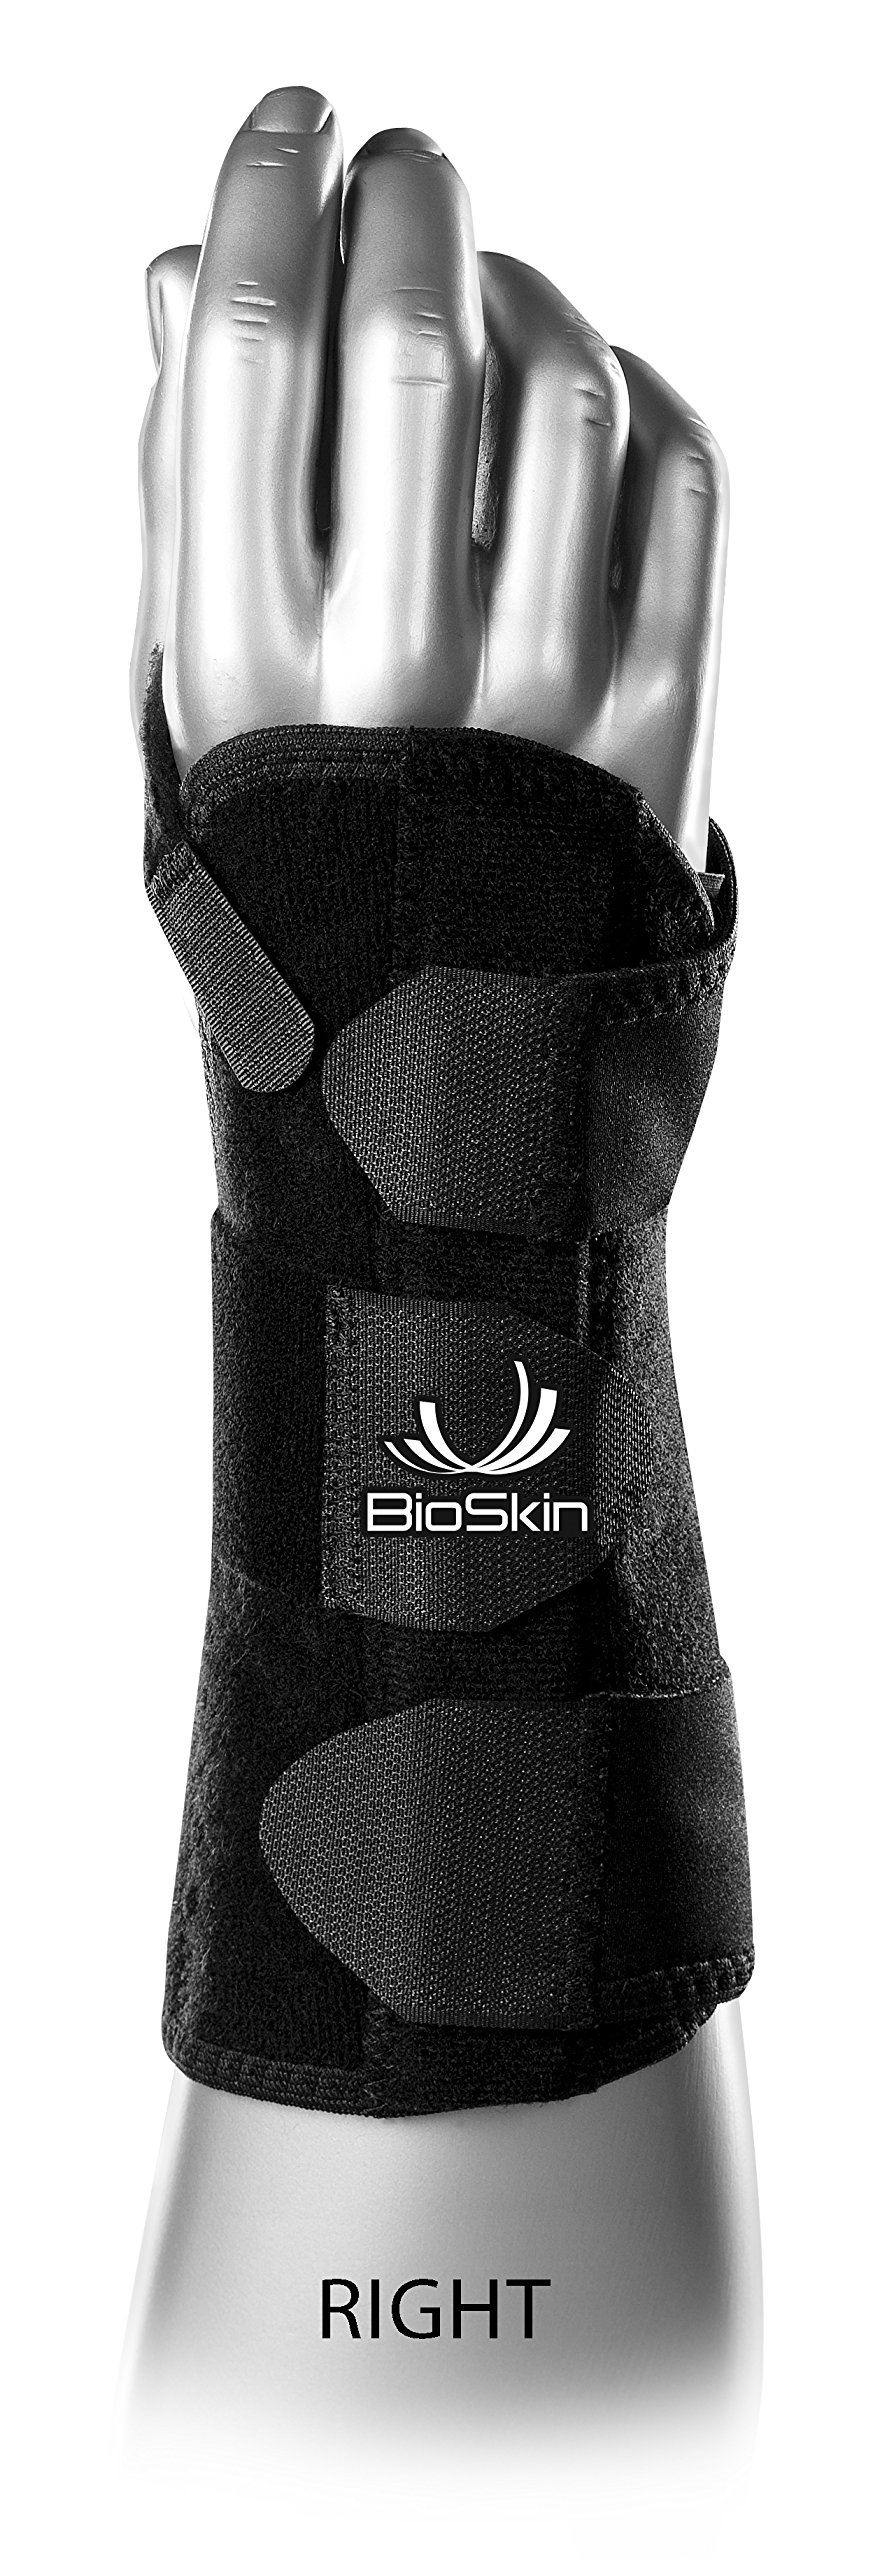 BioSkin DP3 8-Inch Wrist Brace - Hypoallergenic Support for Carpal Tunnel, Tendonitis, and Arthritis Pain (XL-XXL) Right